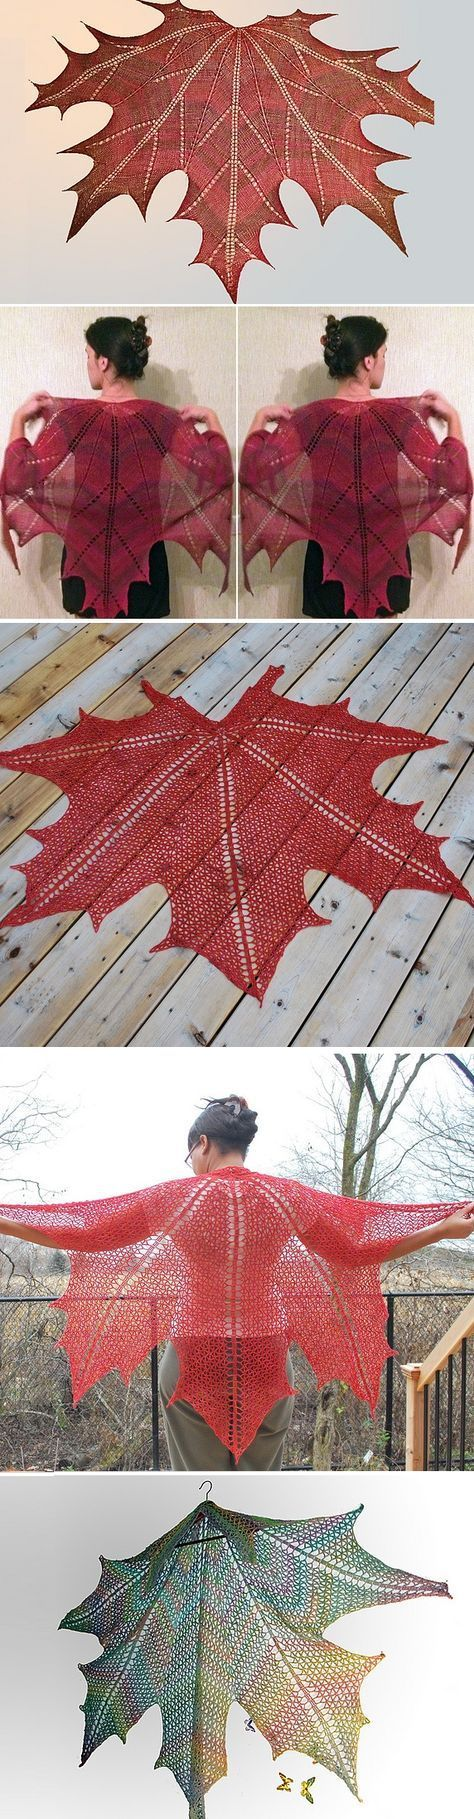 This beautiful shawl can be both knitted or crocheted! EN als je het 2 keer maakt is het dan een trui.